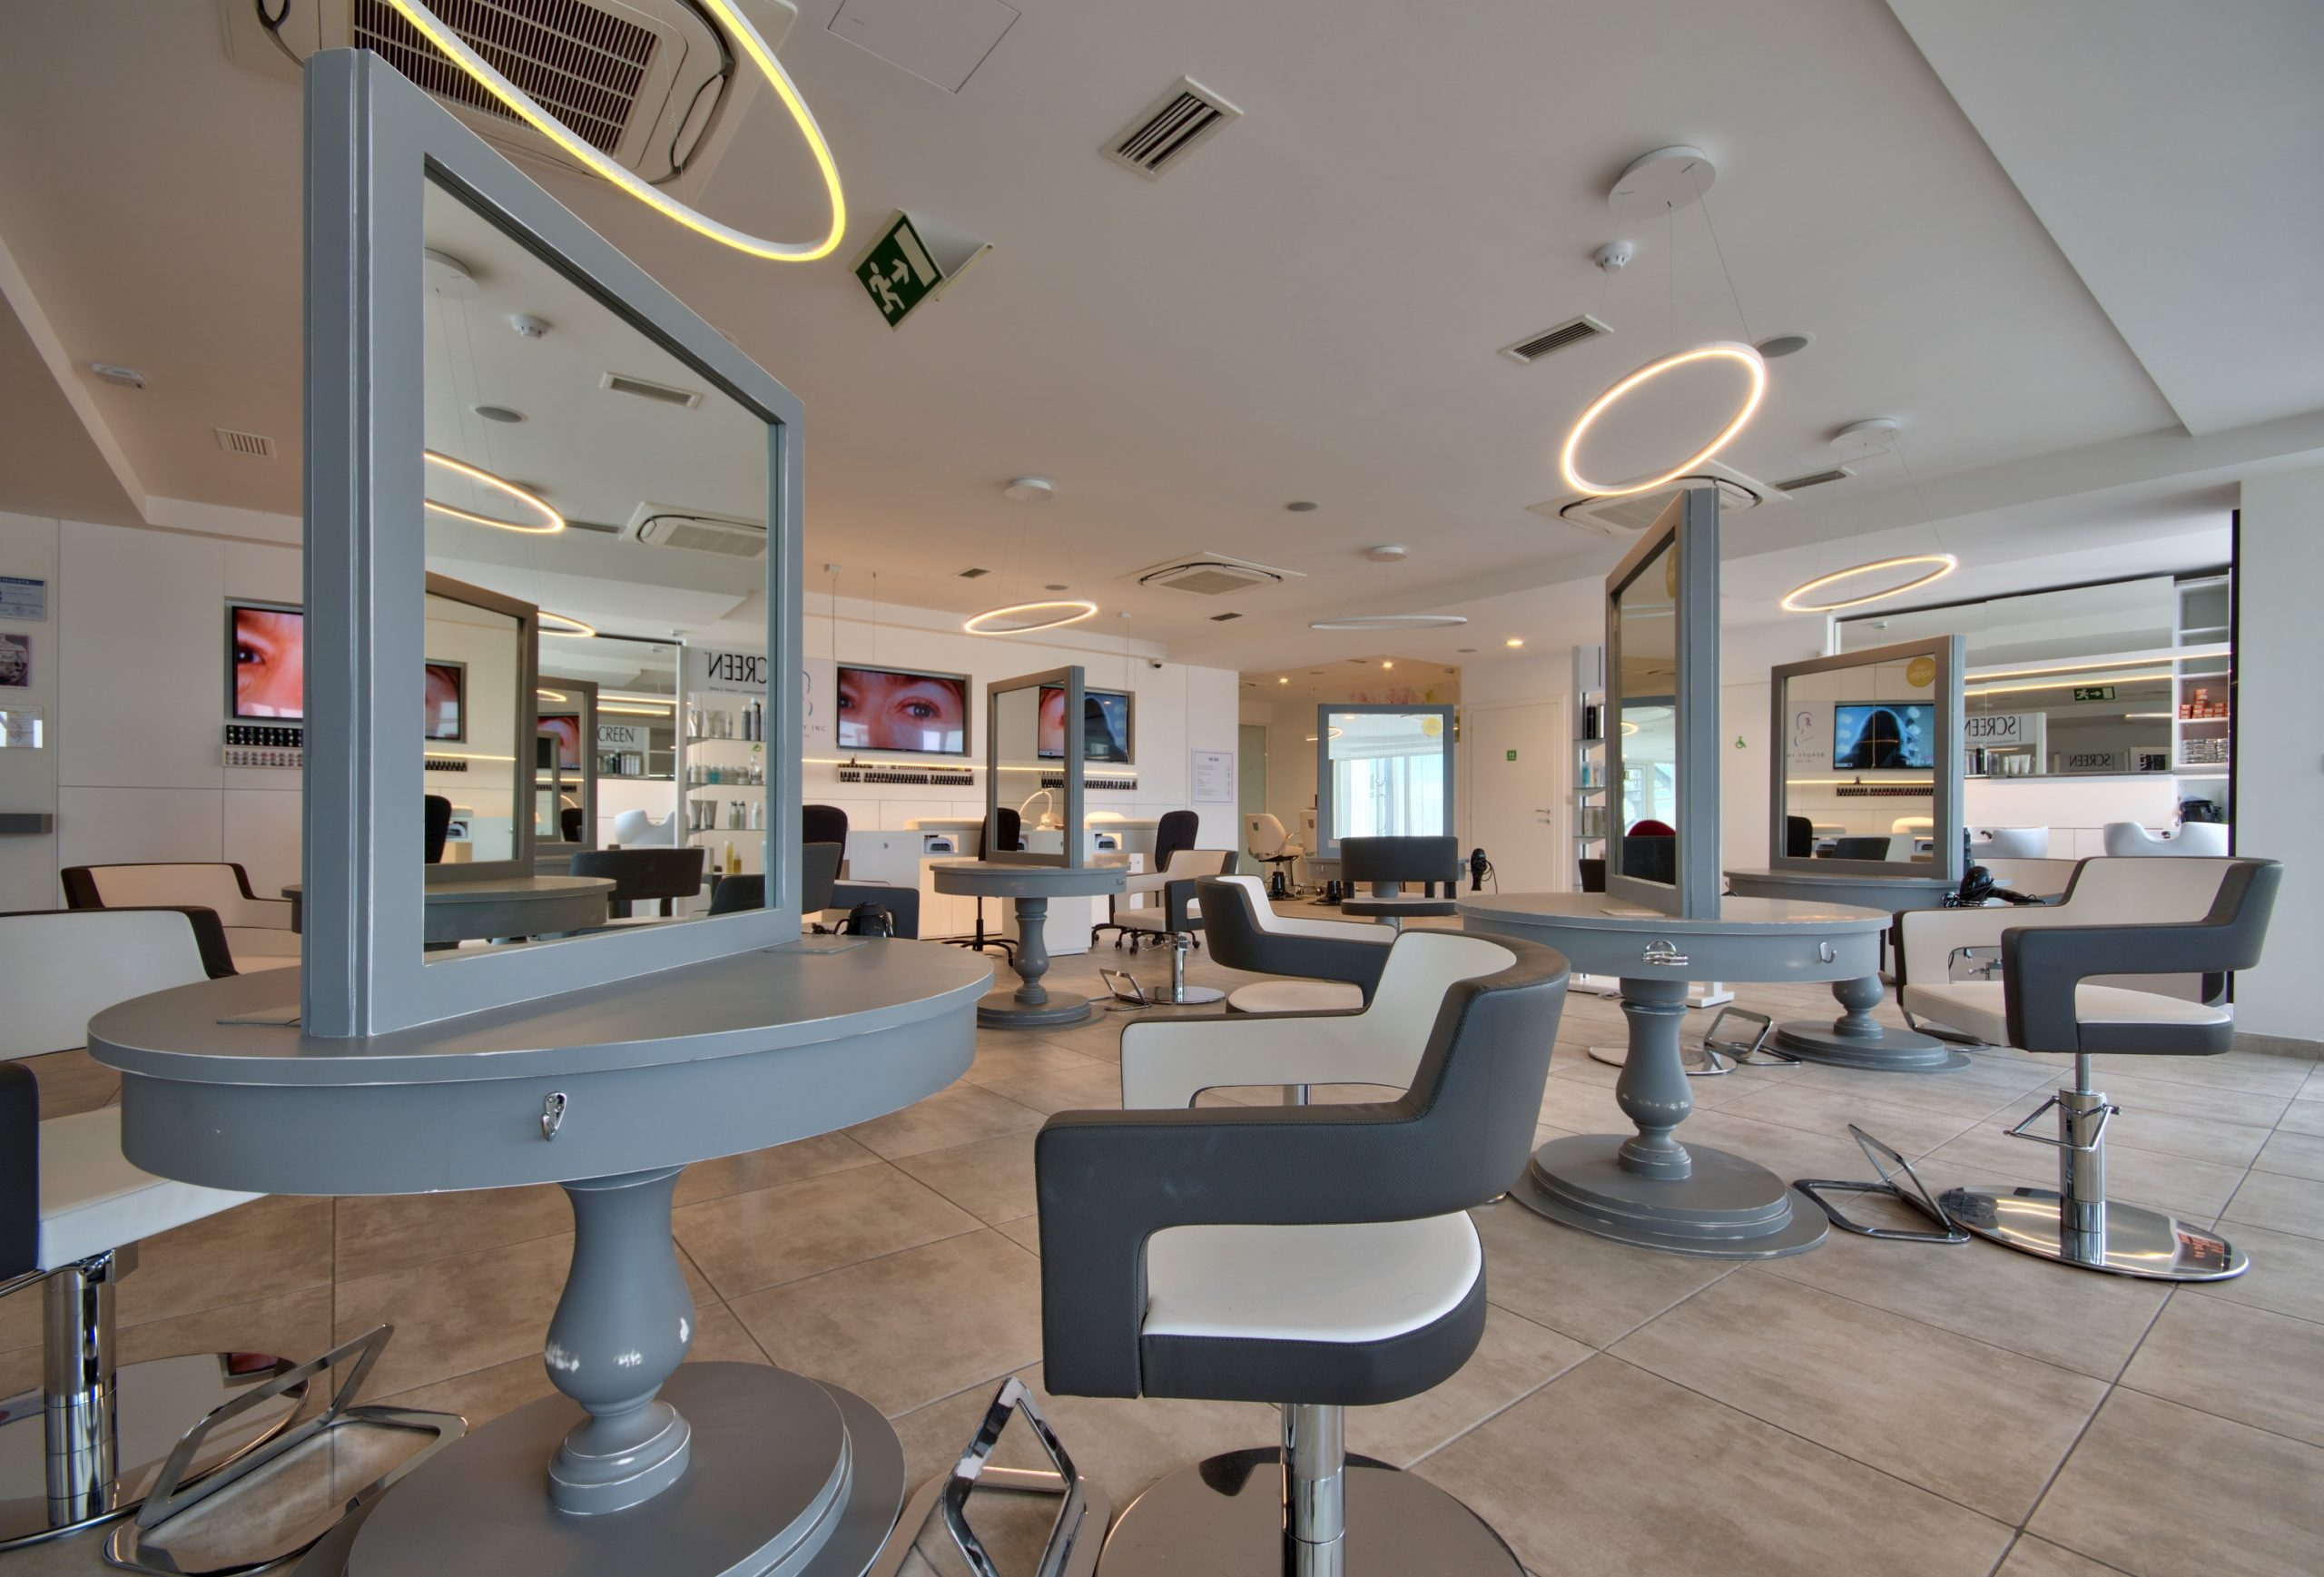 Hair Salon – hair stations, lighting, grey and white scheme